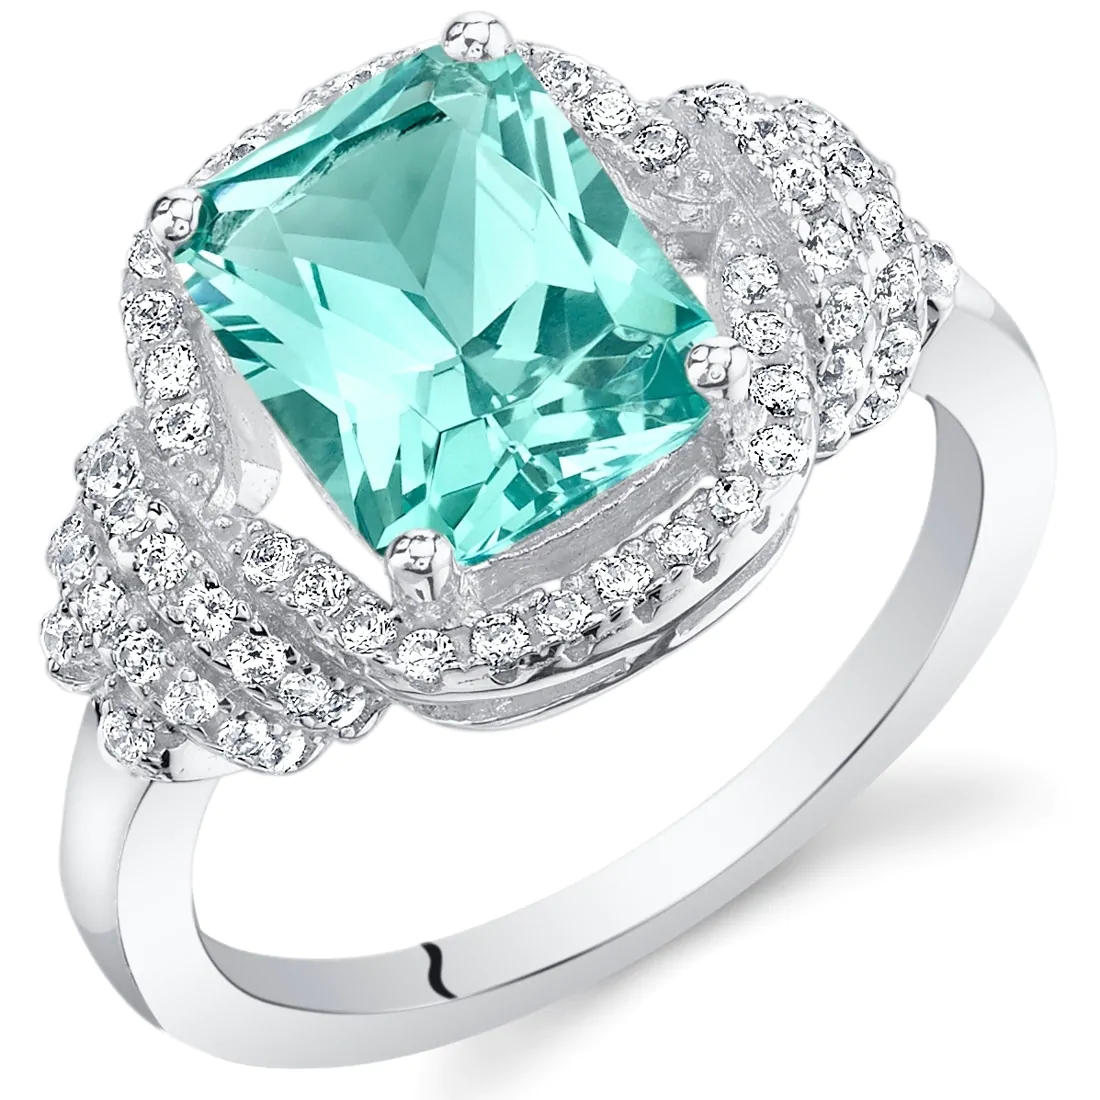 Best massive bling rings 2021 Turquoise Tourmaline Stone with Glittering Diamonds On Sterling Silver Ring